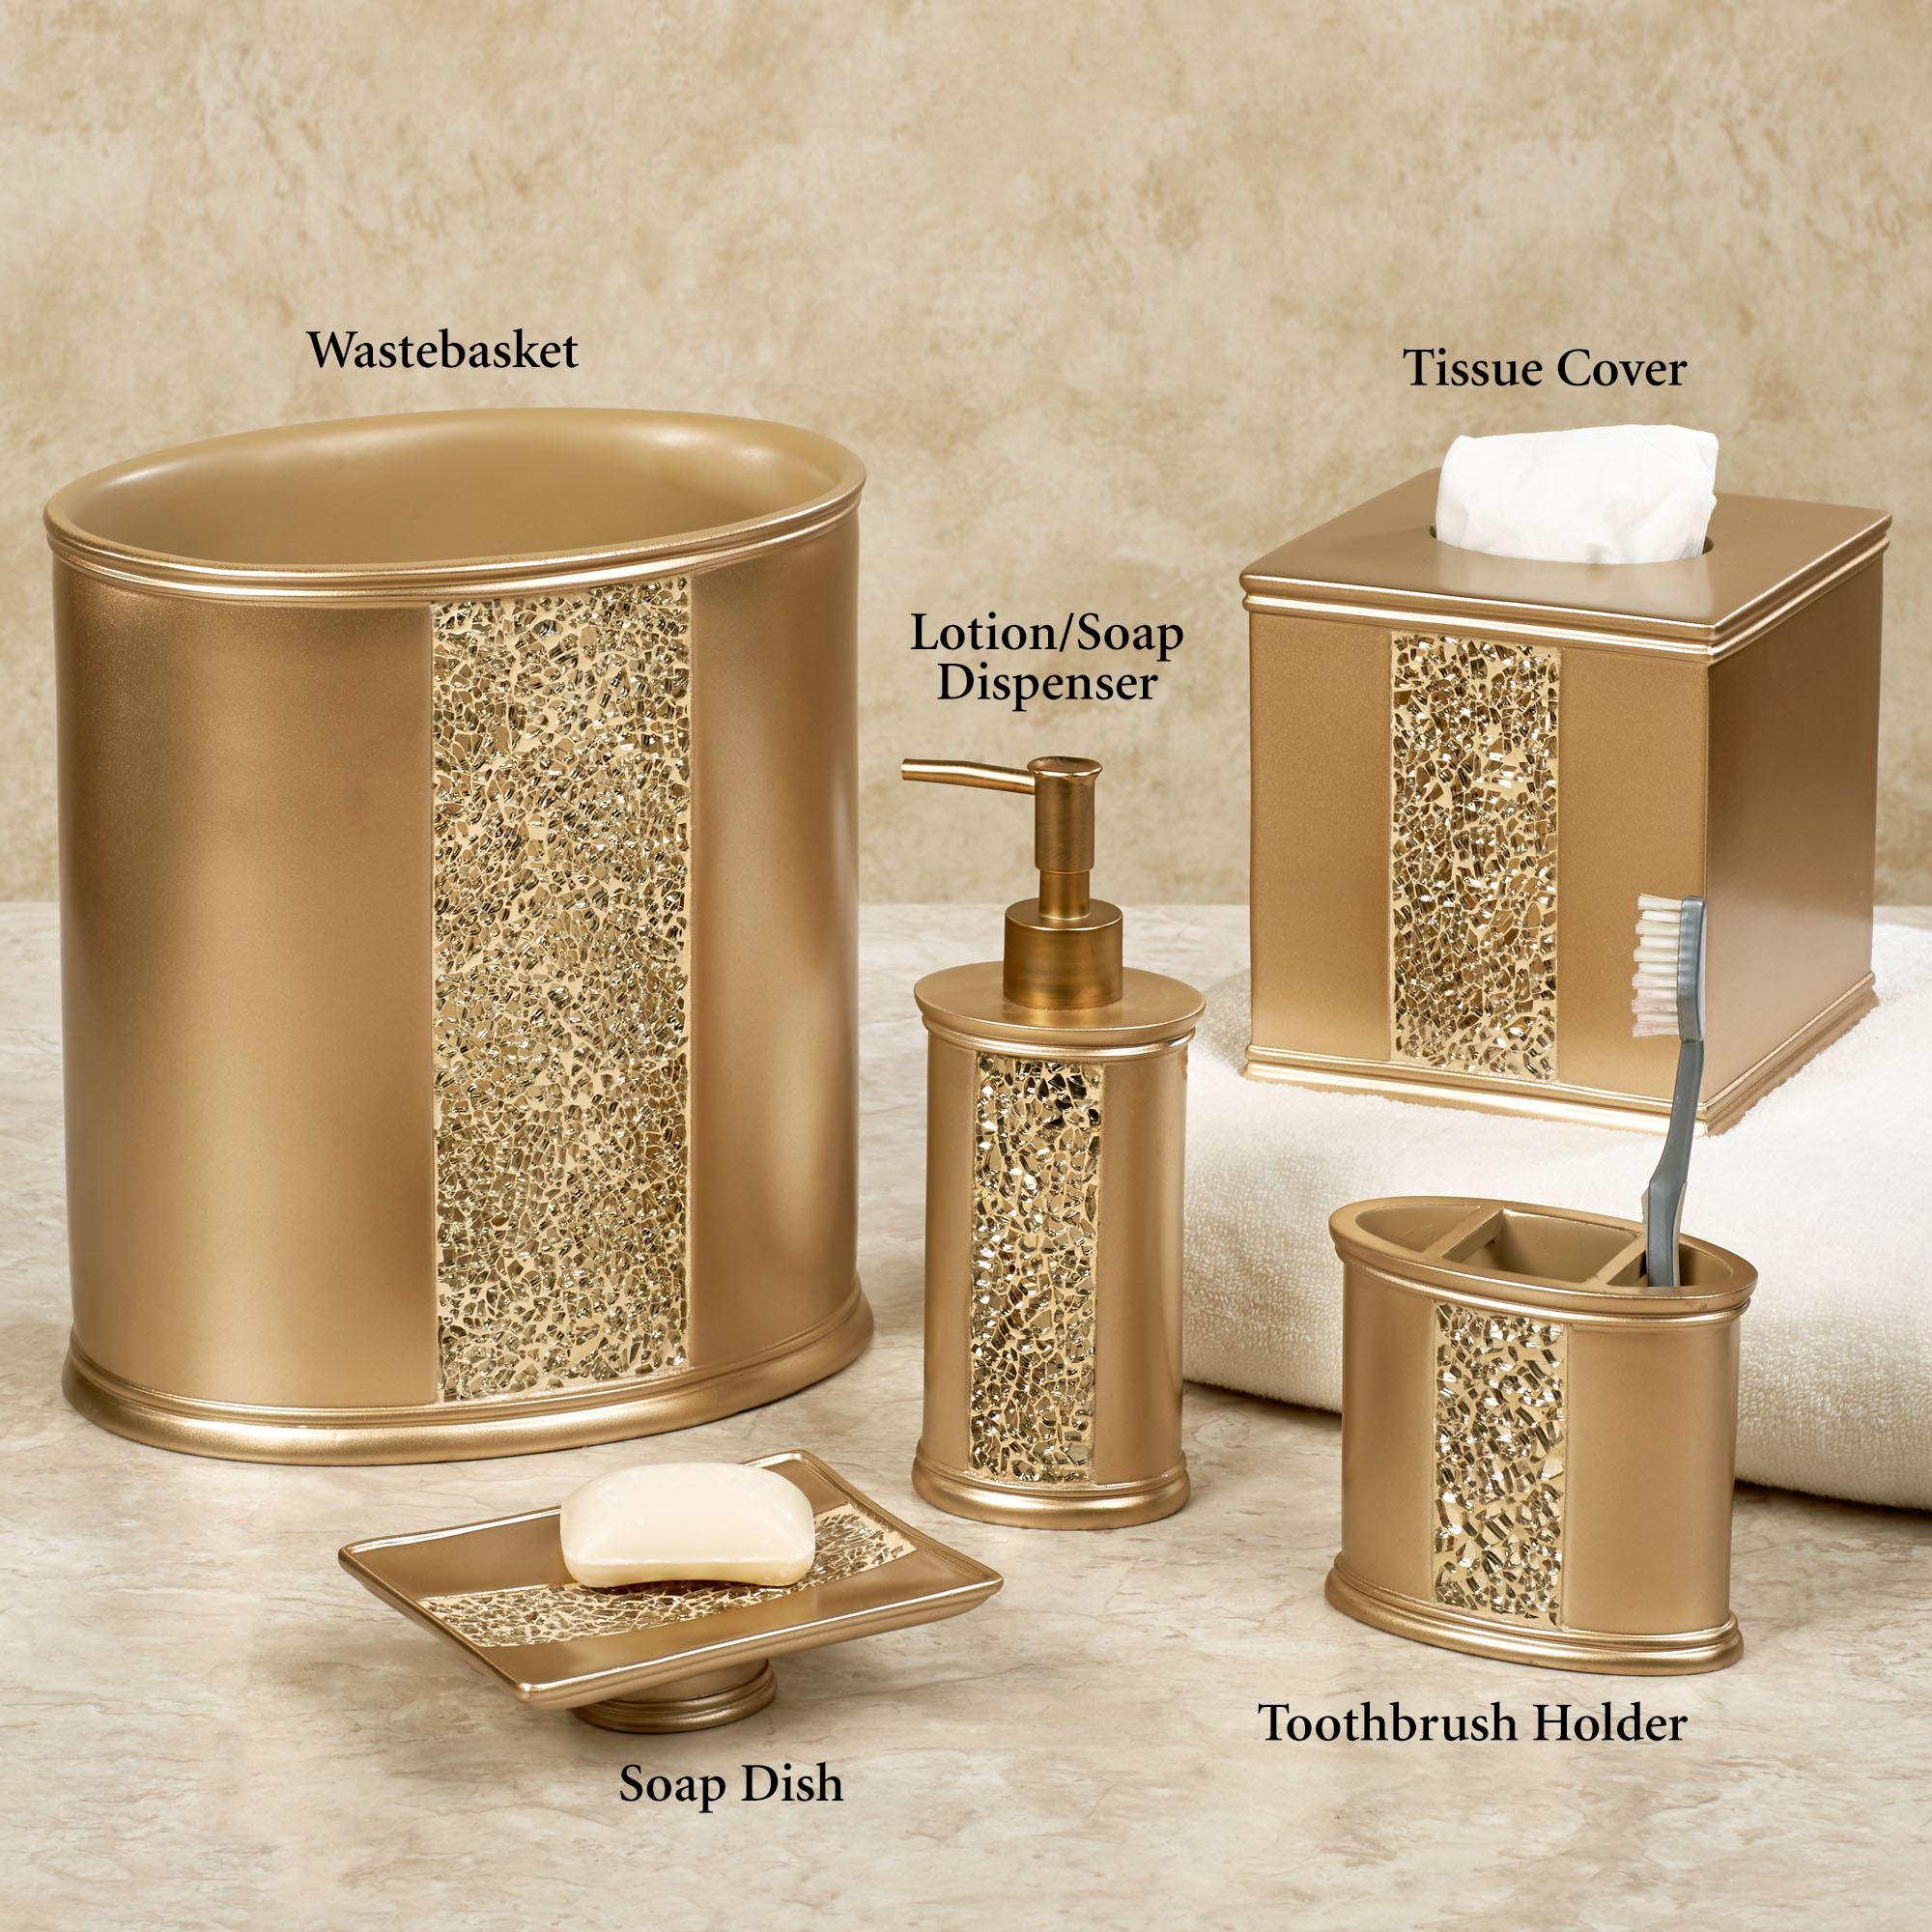 Bathroom Decor Sets bathroom decor sets YURRZOP